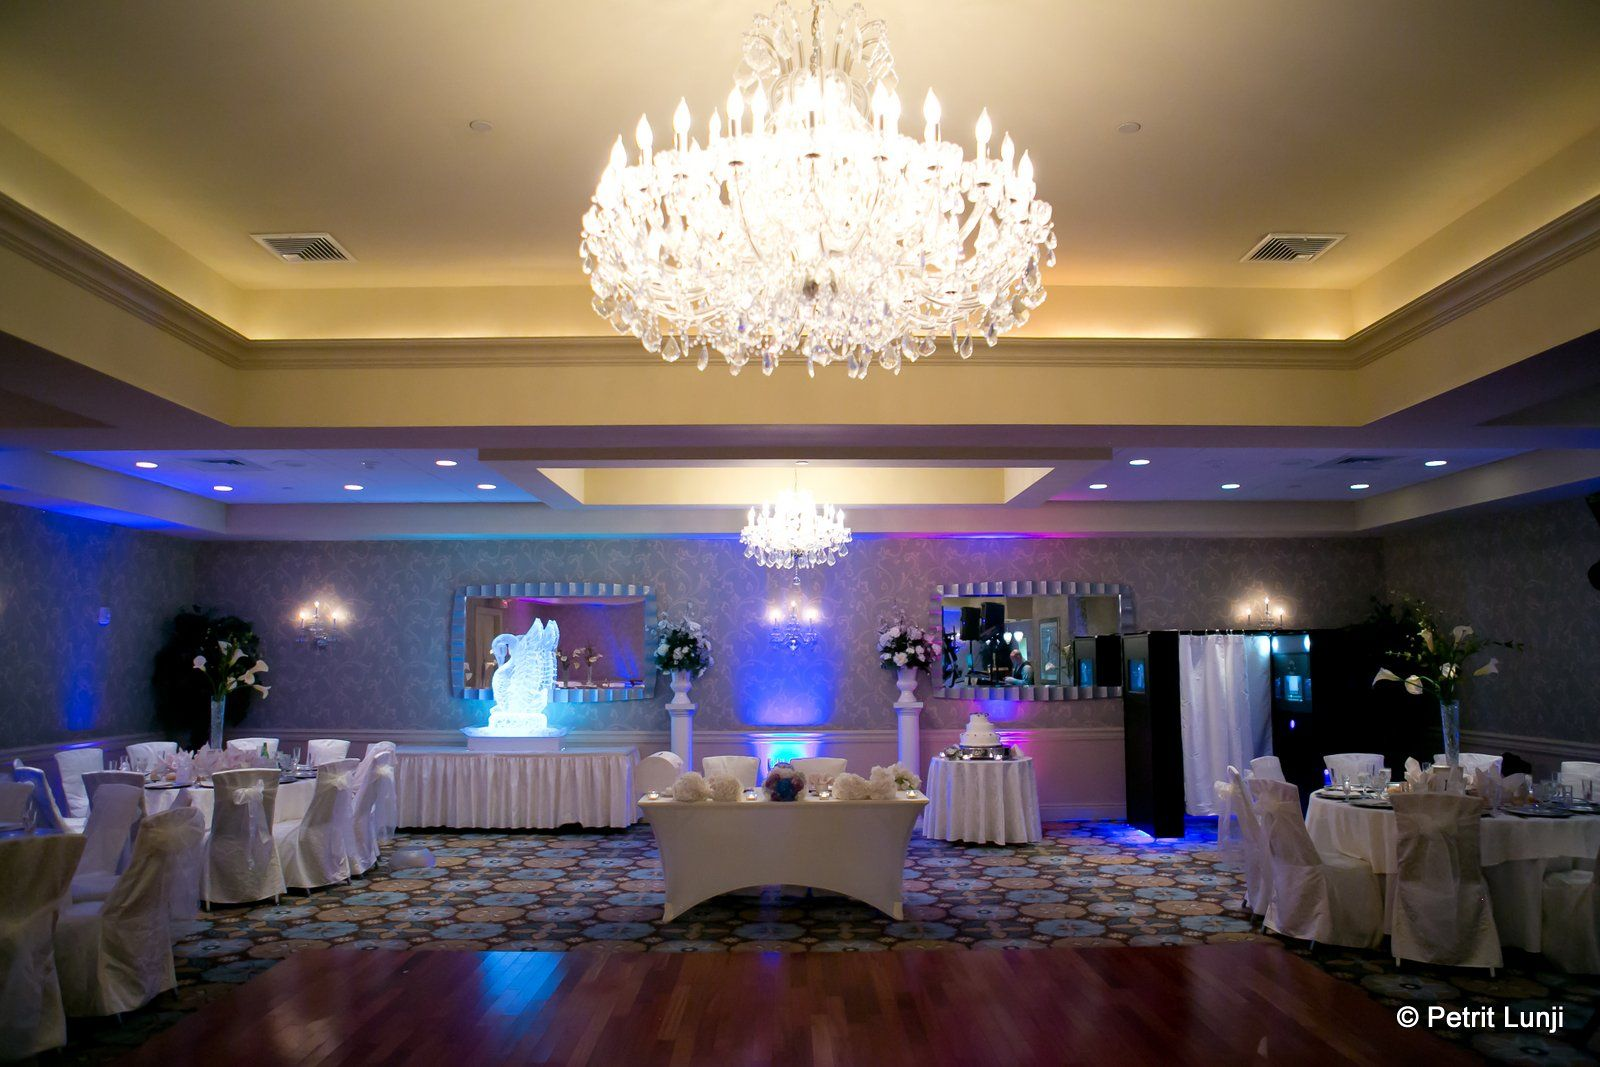 The Emerald Ballroom has amazing features and the Hollywood lighting really  sets a magical mood. Contact us to … | Nj weddings, Wedding pinterest,  Wedding reception